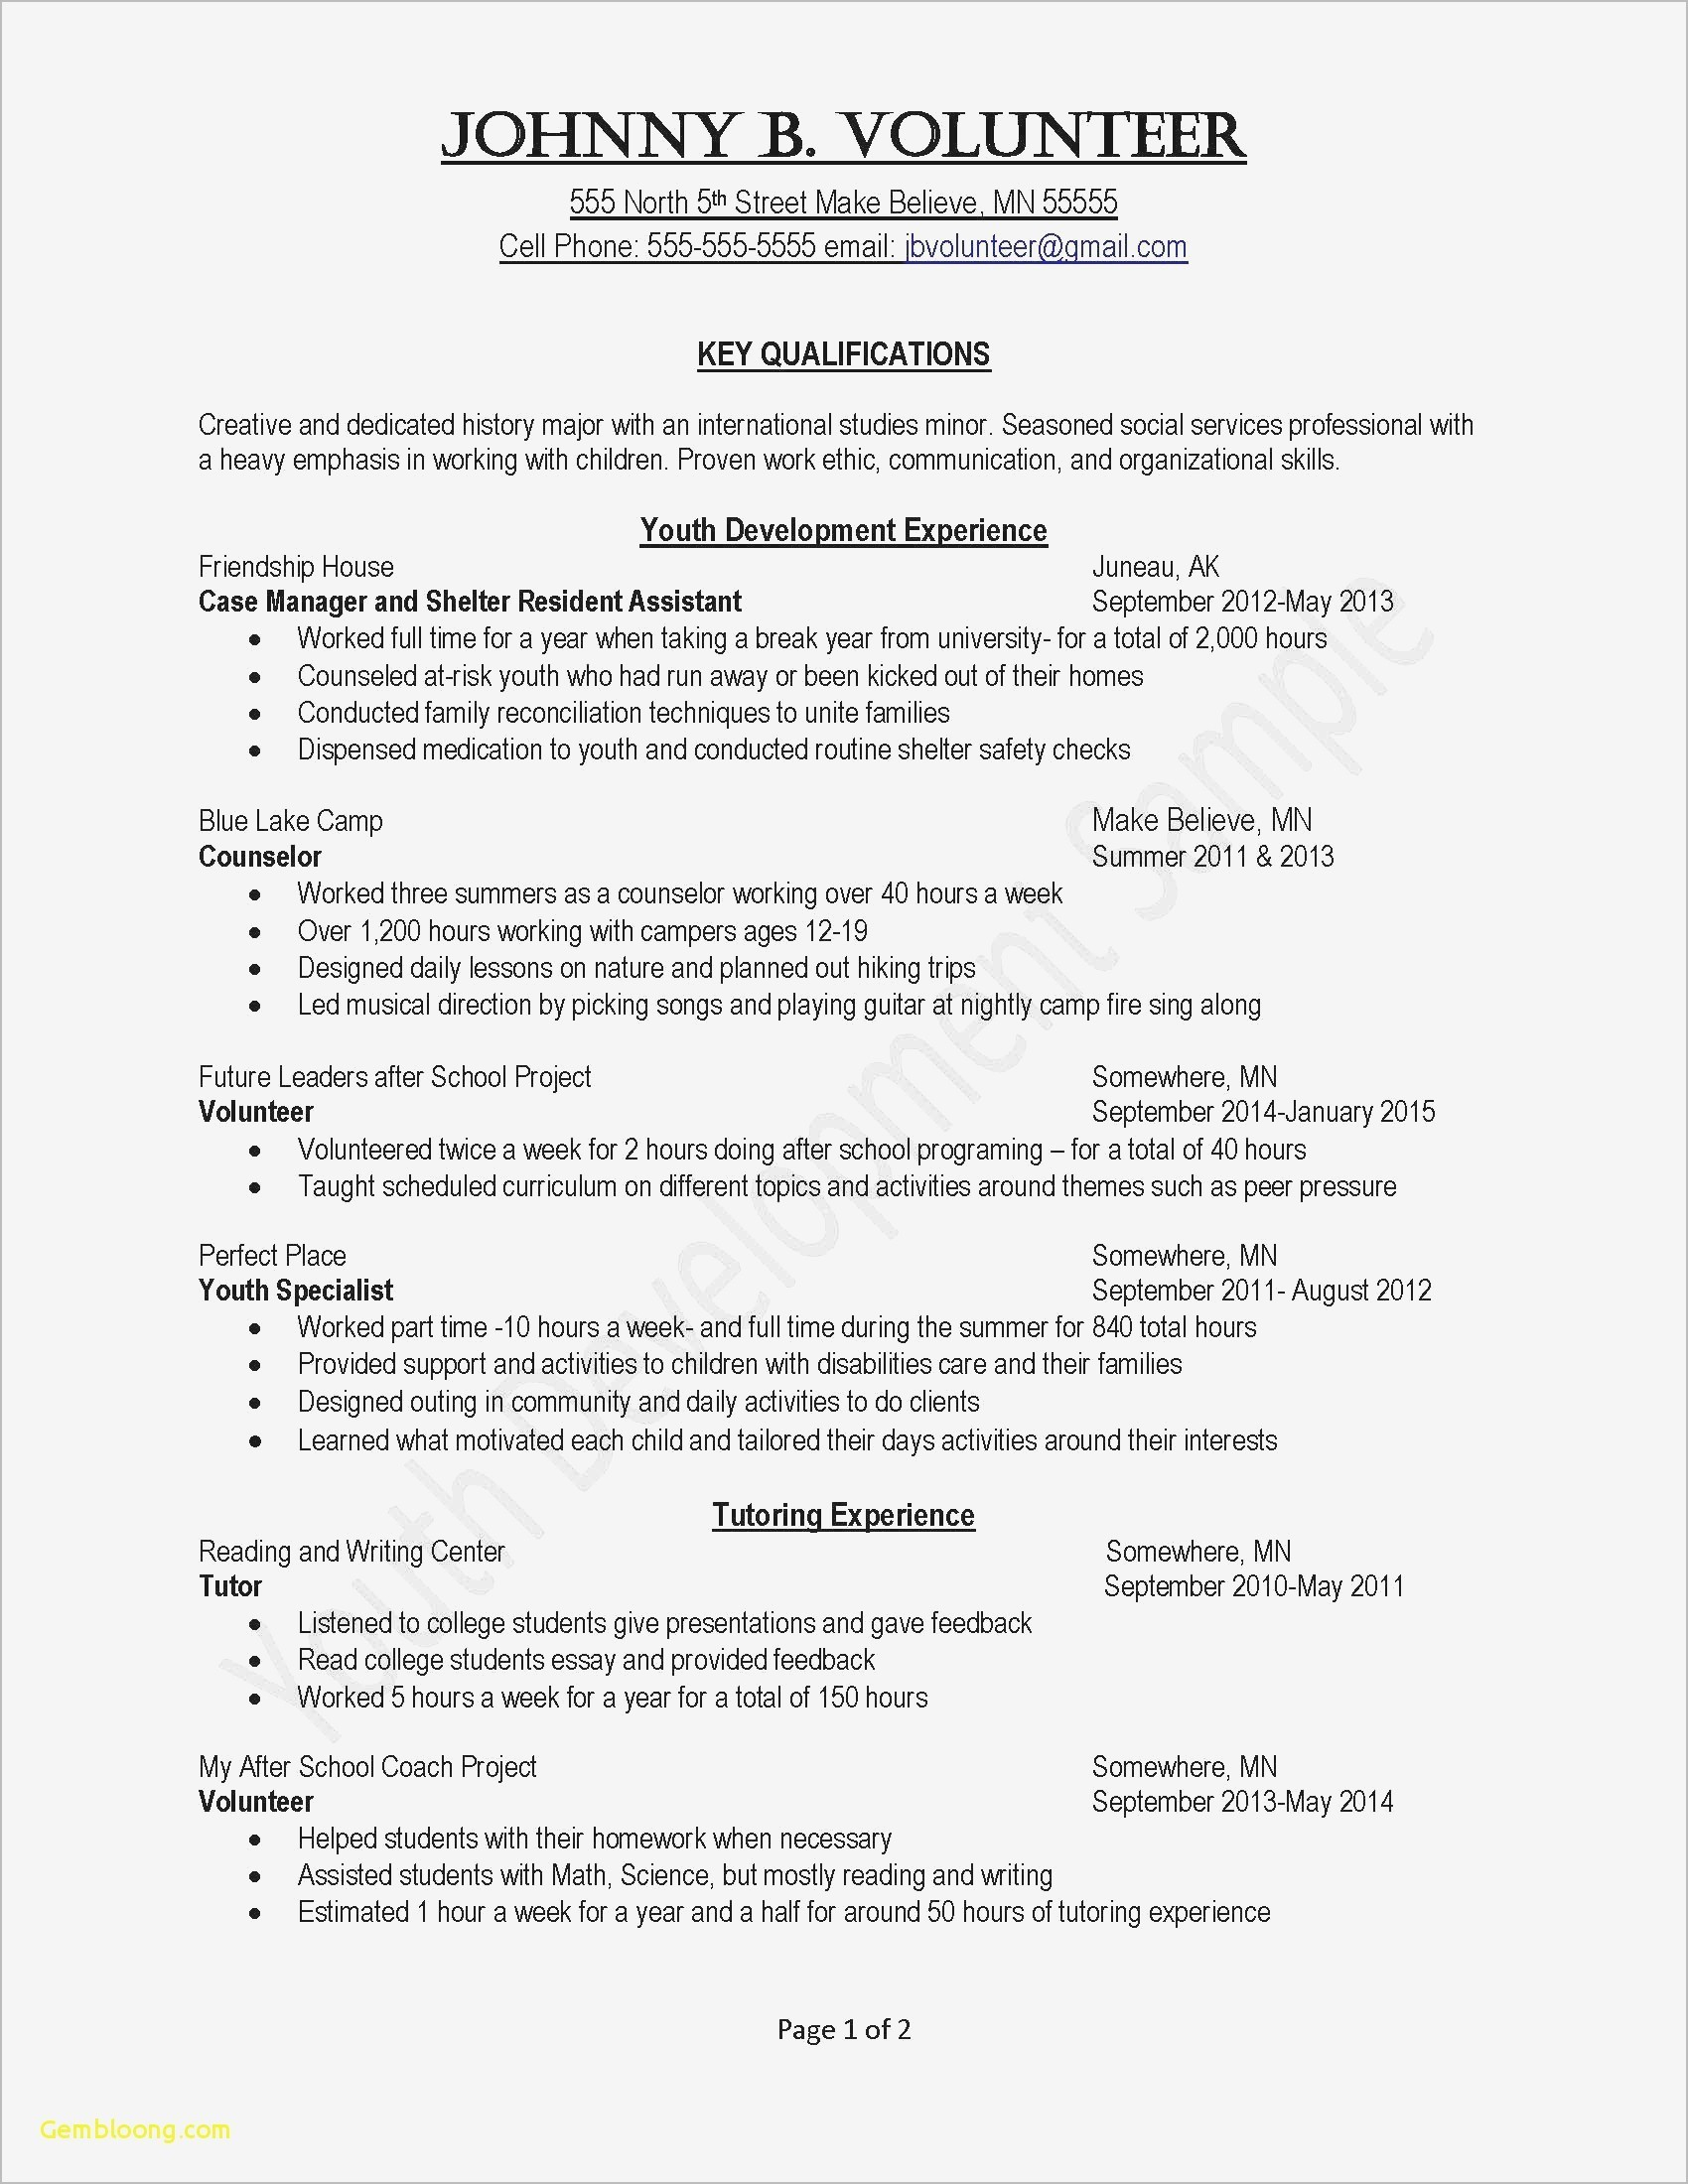 Career Cover Letter Template - Fax Cover Sheet for Resume Inspirationa Fax Cover Letter Template